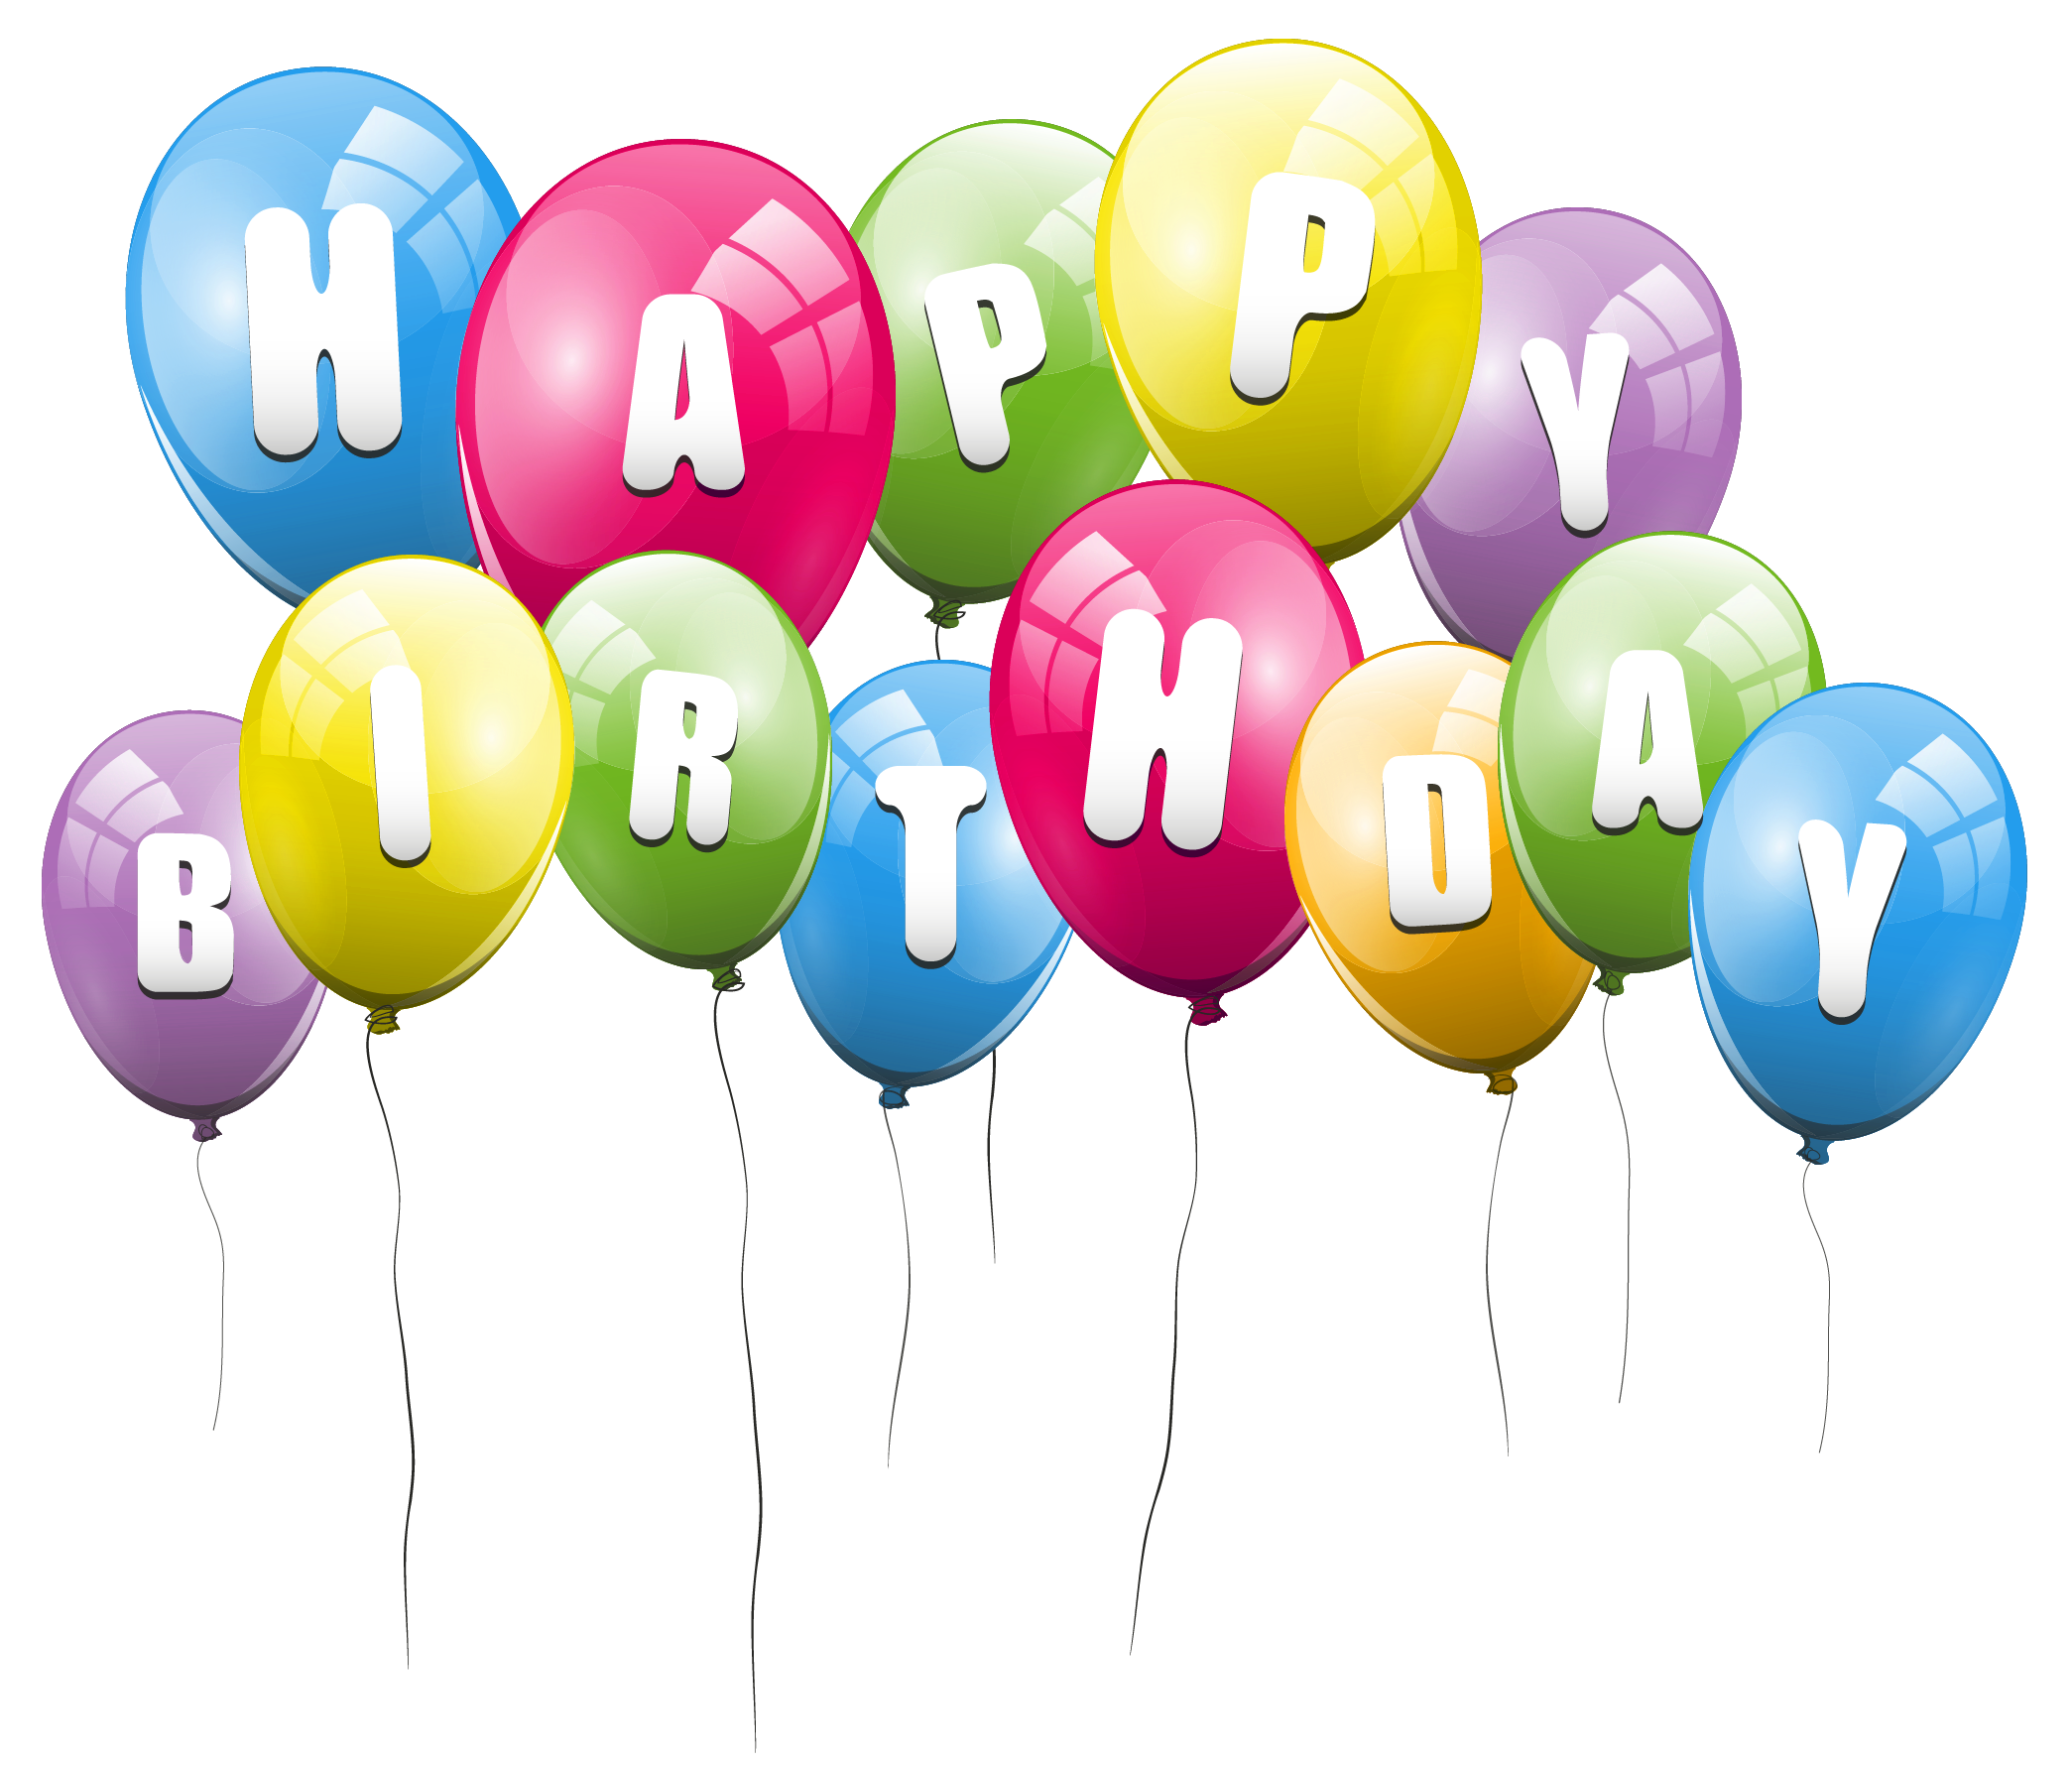 Happy Birthday Ballons Png - Transparent Balloons Happy Birthday PNG Picture Clipart | Gallery ...